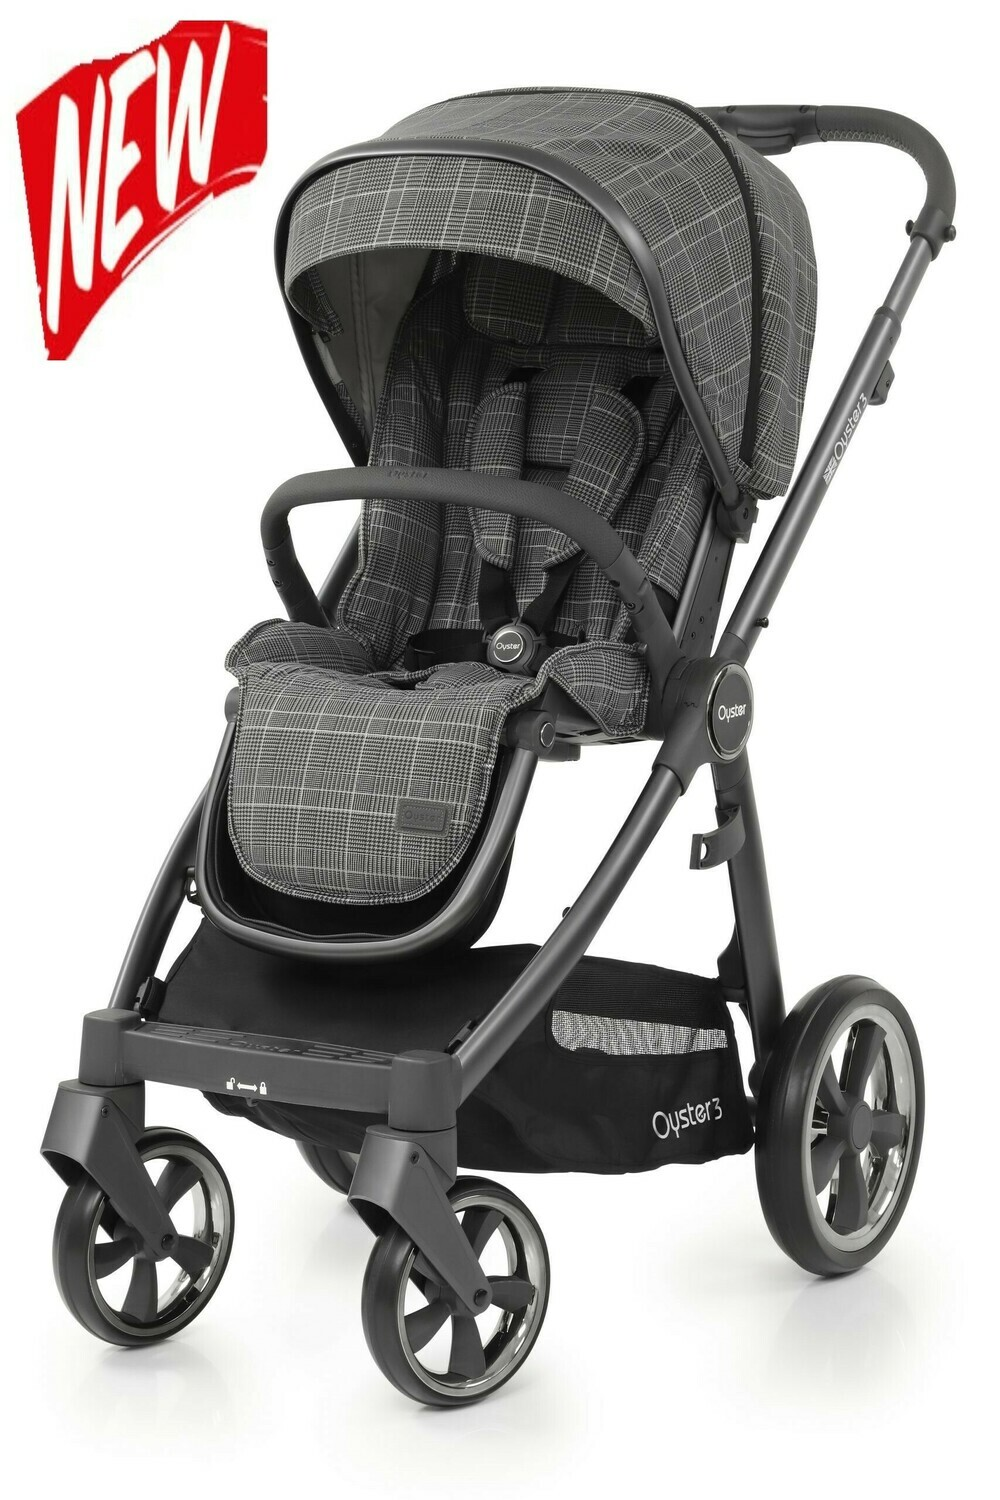 Babystyle Oyster 1 Stroller Pushchair Black Seat Pad Cover Fabric Liner Unit